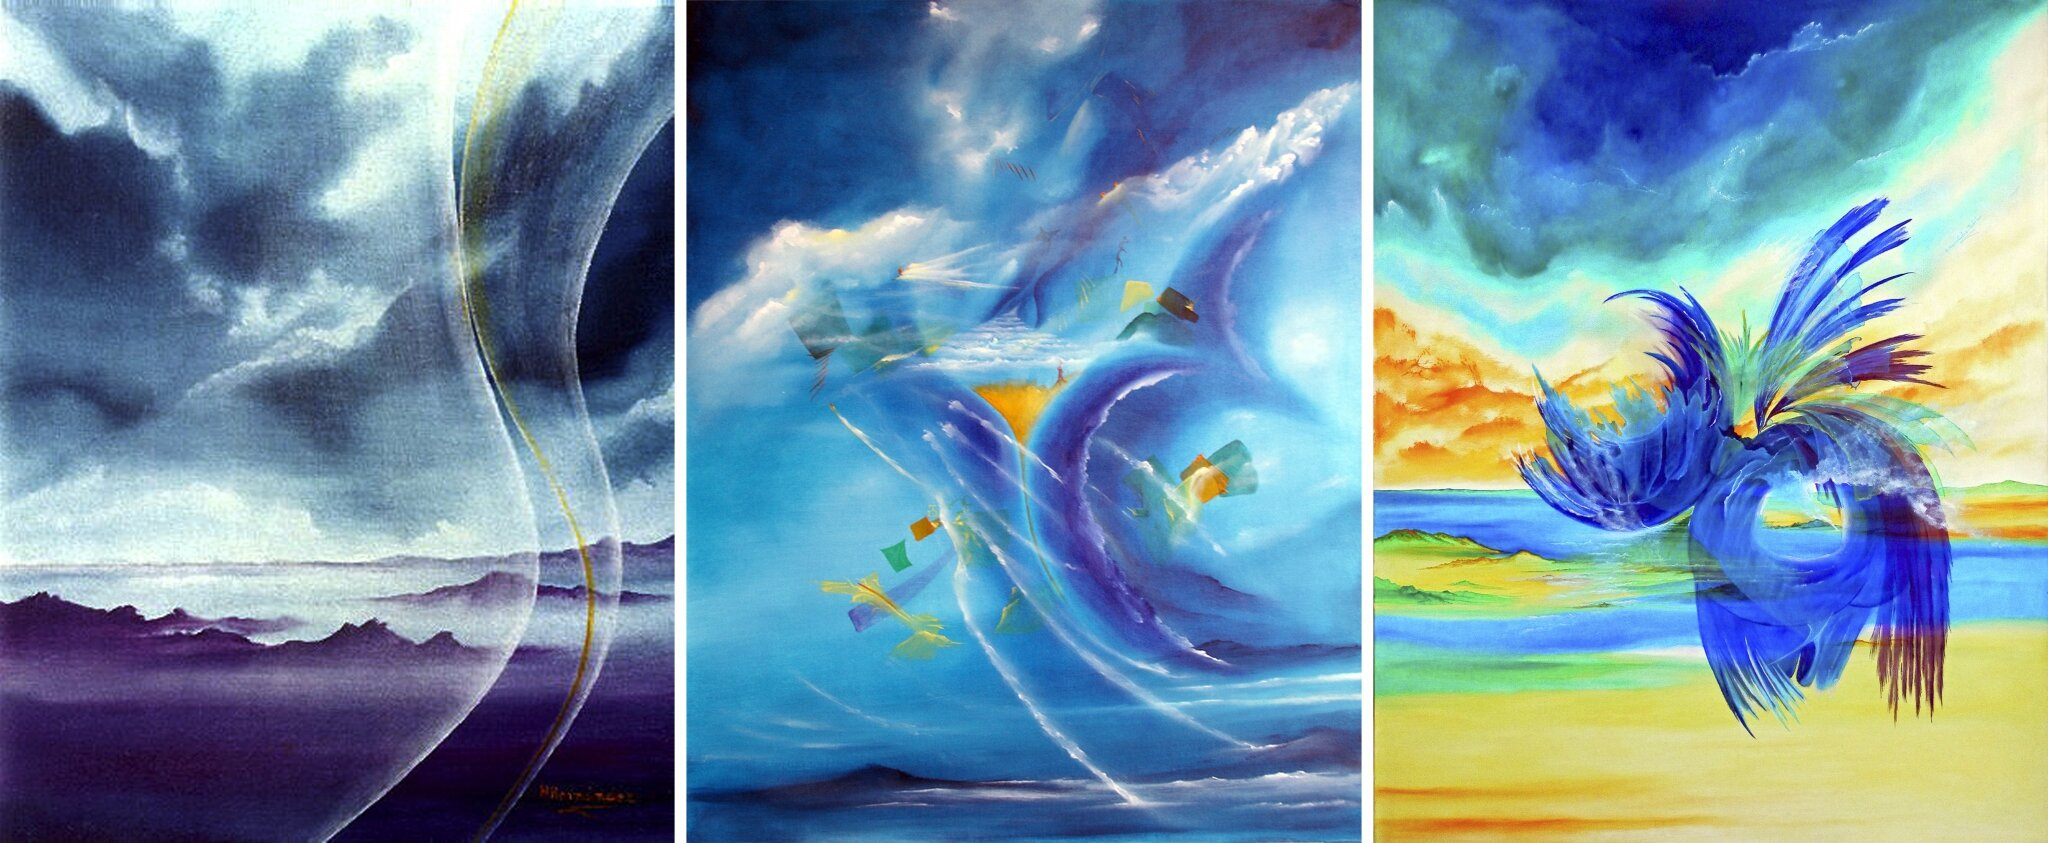 Arte Nubes - Peinture Contemporaine - Pintura Contemporanea - Art Nuages